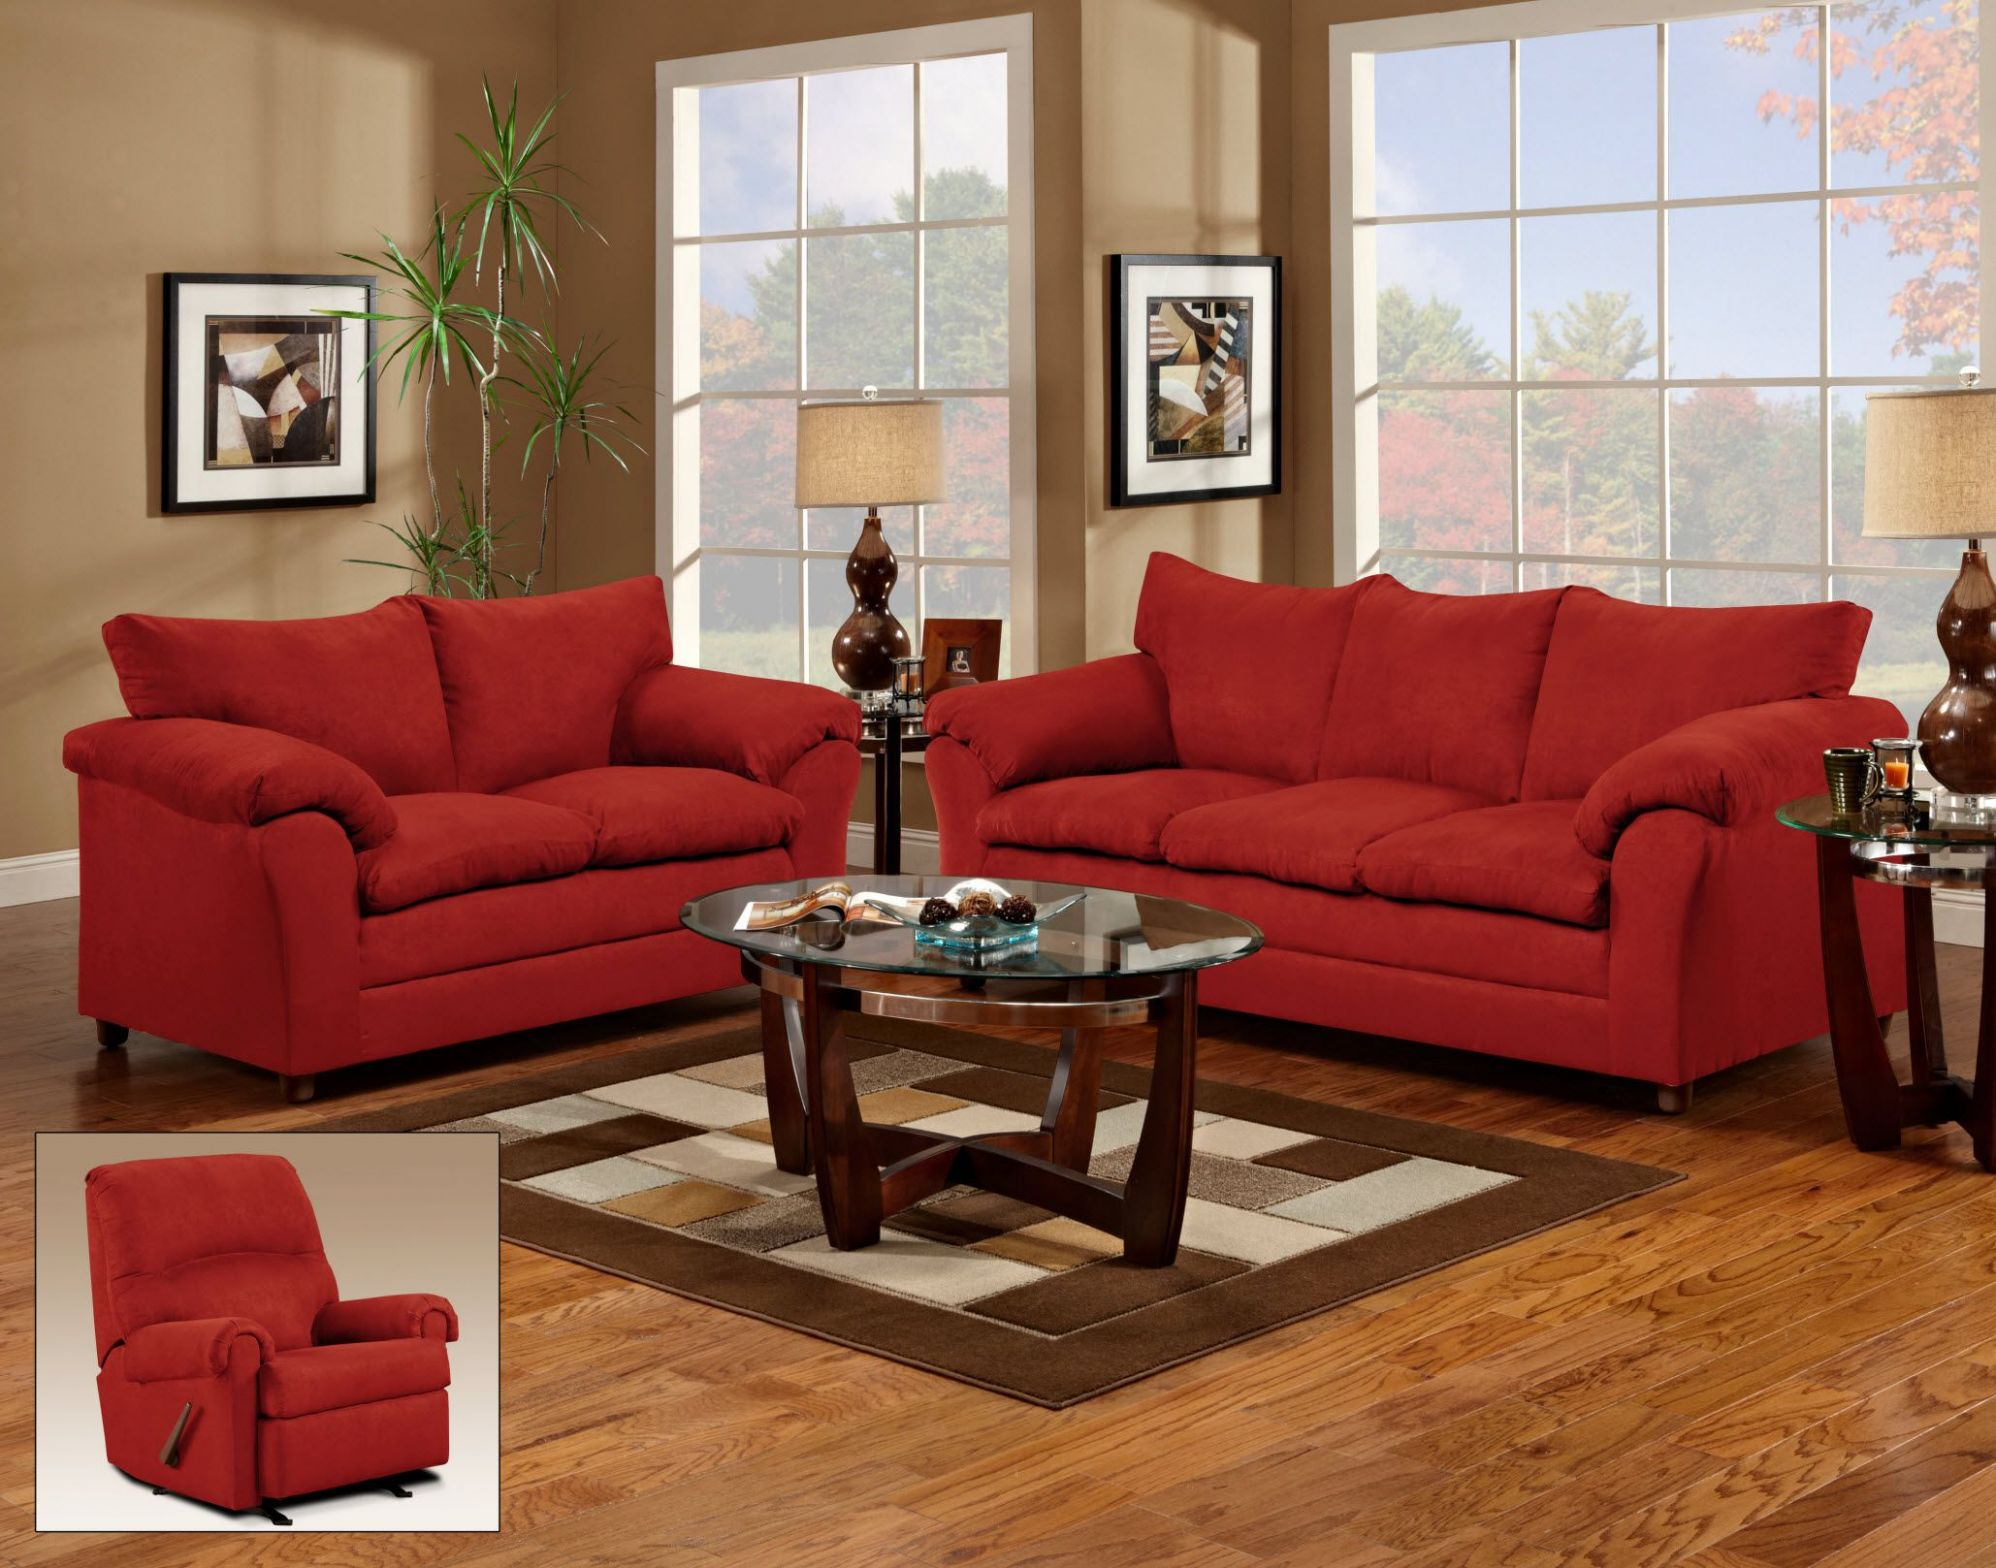 Red Couch and Loveseat - living room | Red couch living room ..